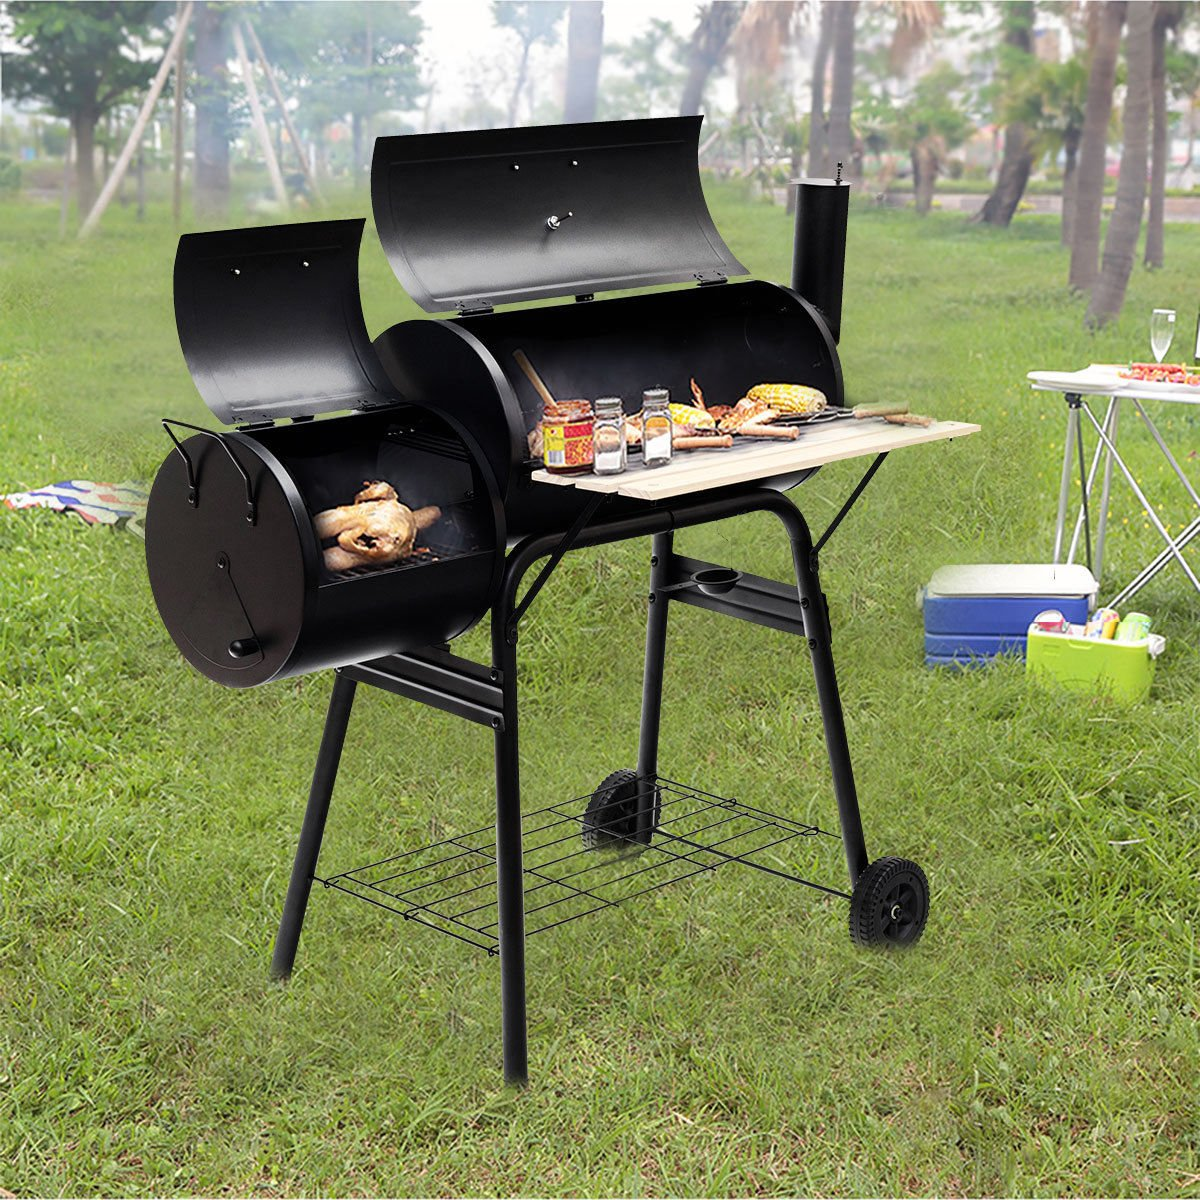 VeenShop Family Happiness Outdoor BBQ Grill Charcoal Barbecue Pit Patio Backyard Meat Cooker Smoker by VeenShop